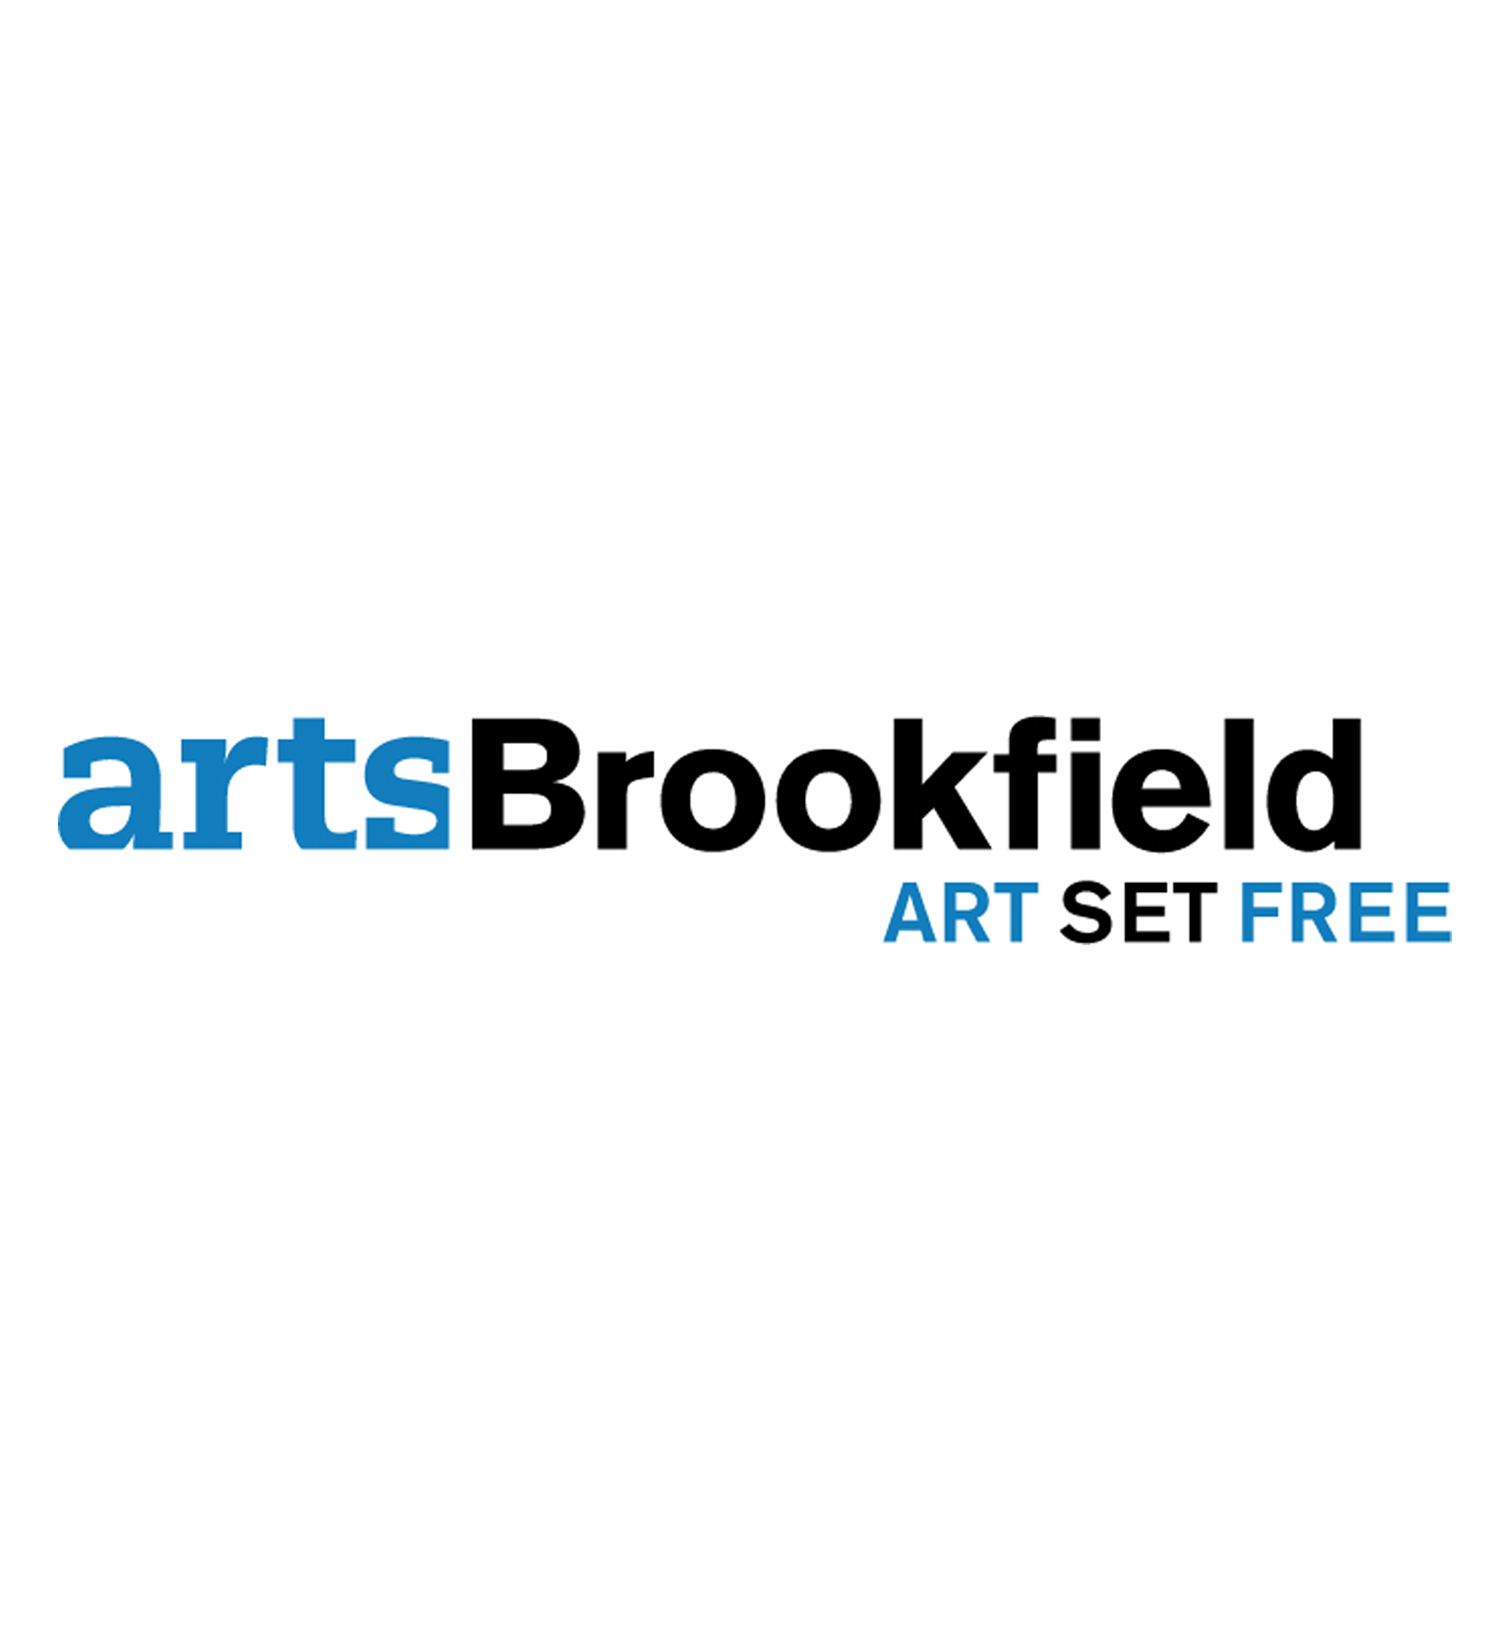 - World-class cultural experiencesArts Brookfield presents exciting, world-class cultural experiences to hundreds of thousands of people for free each year in both indoor and outdoor public spaces at Brookfield's premier properties in New York, Los Angeles, Denver, Houston, Washington, D.C., Toronto, London, Perth and Sydney. From concerts, theater and dance to film screenings and art exhibitions, Arts Brookfield brings public spaces to life through art.